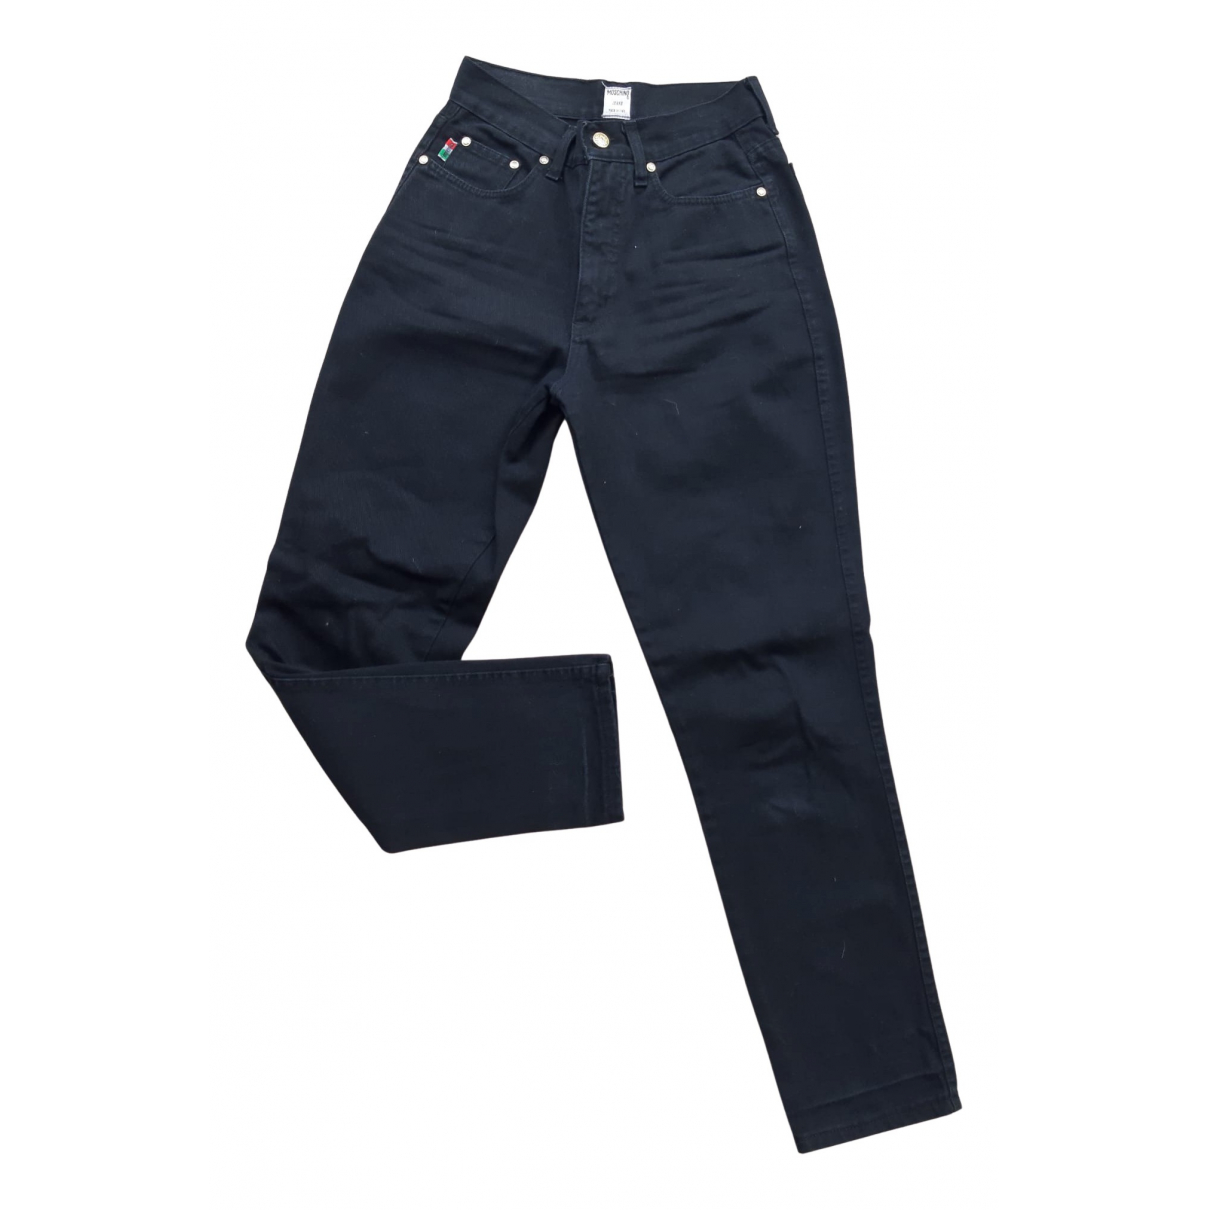 Moschino N Black Denim - Jeans Jeans for Women 30 US